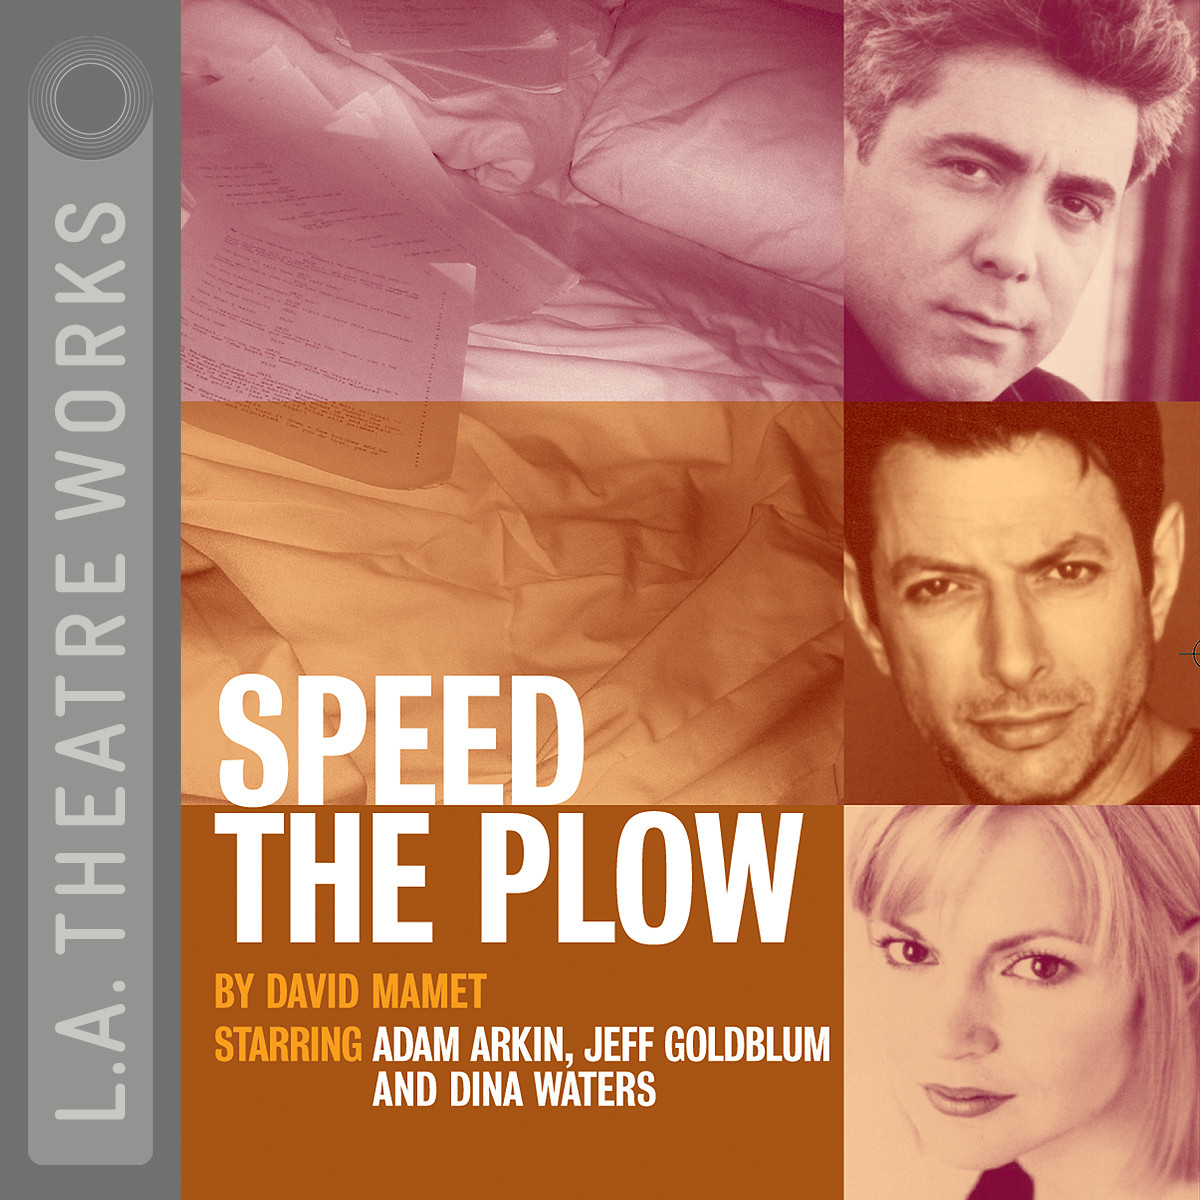 Printable Speed the Plow Audiobook Cover Art